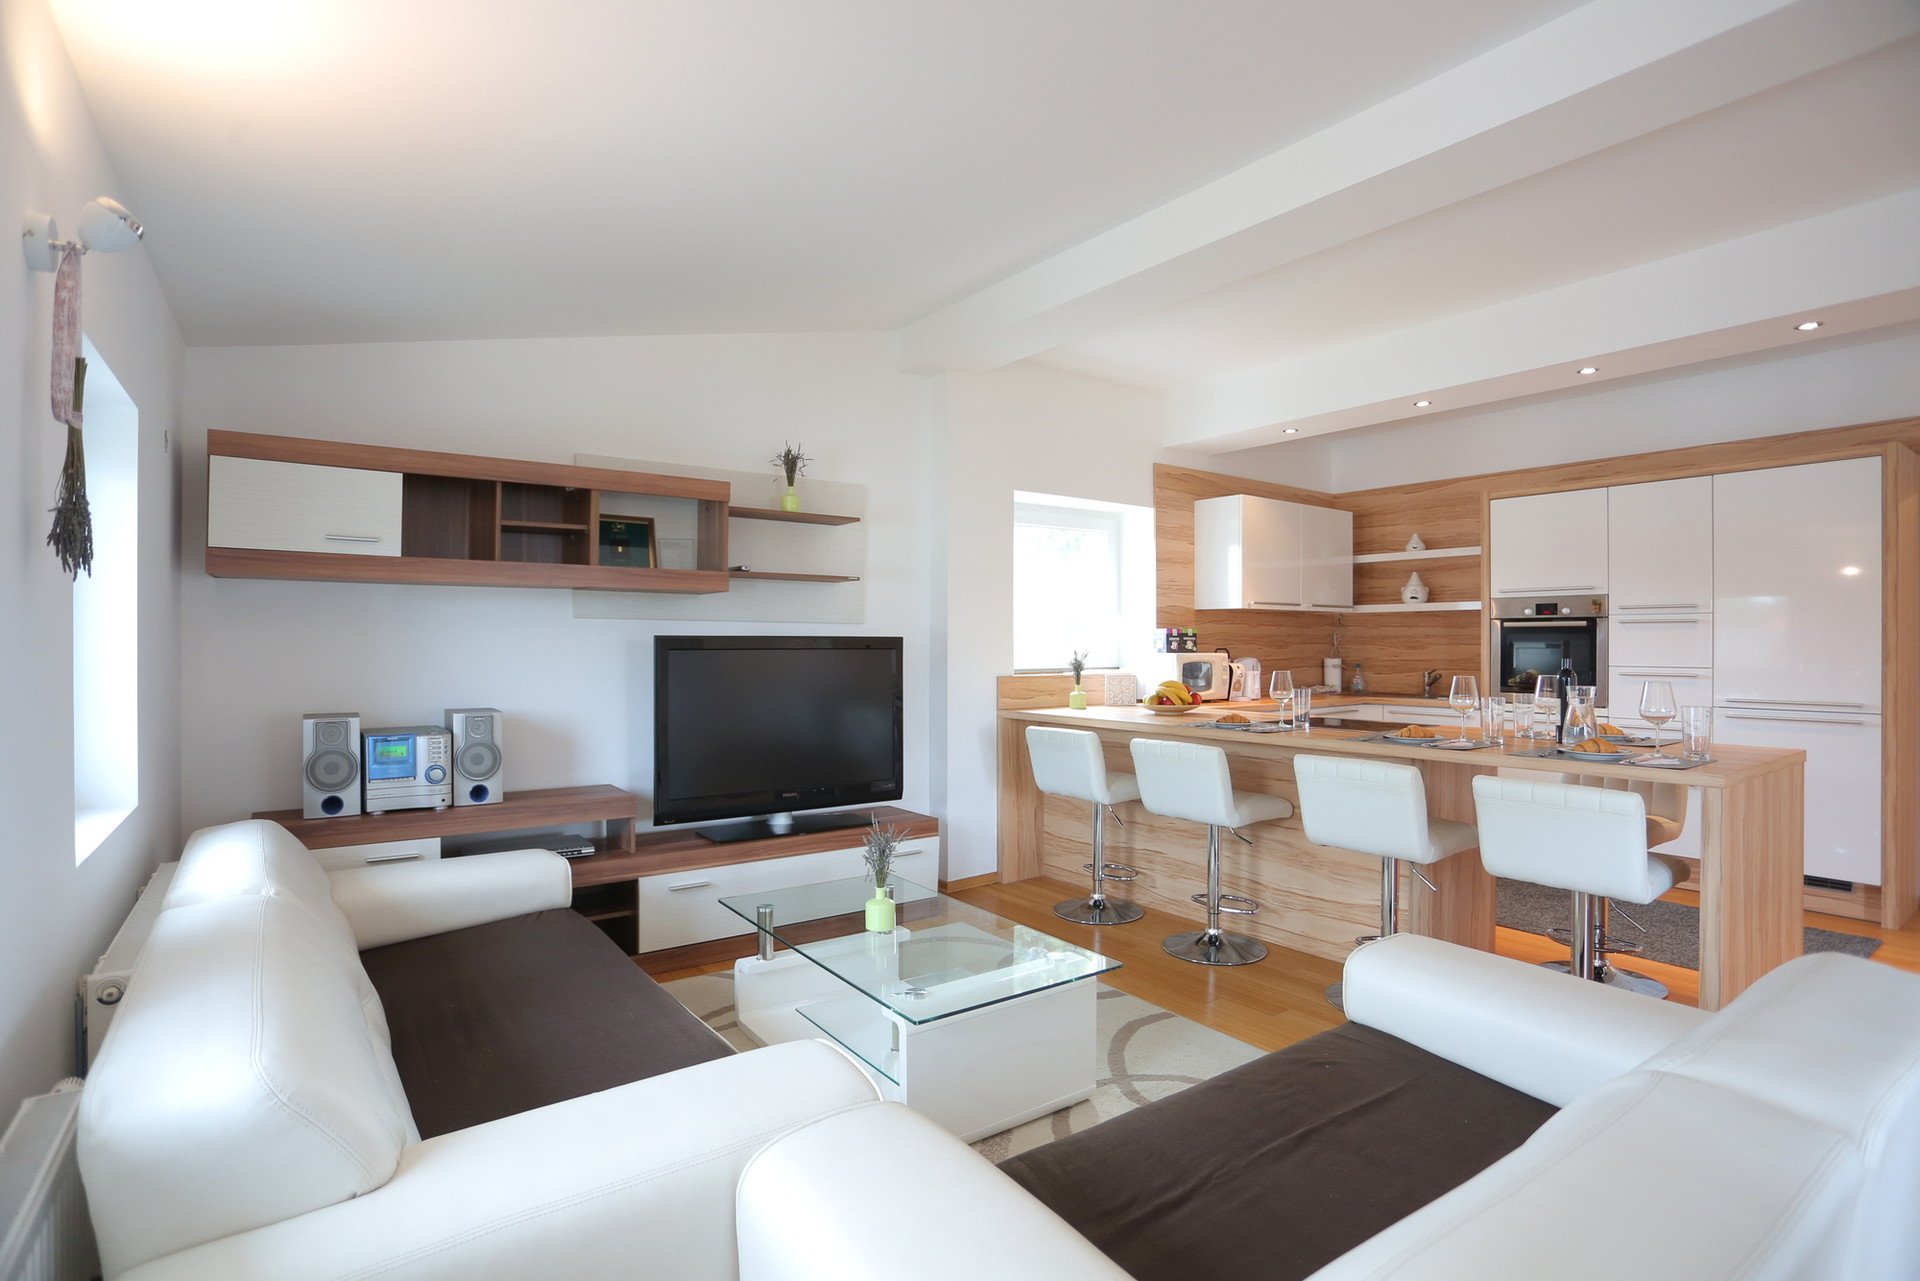 Beautiful apartment with castle view in peaceful area in Ljublja